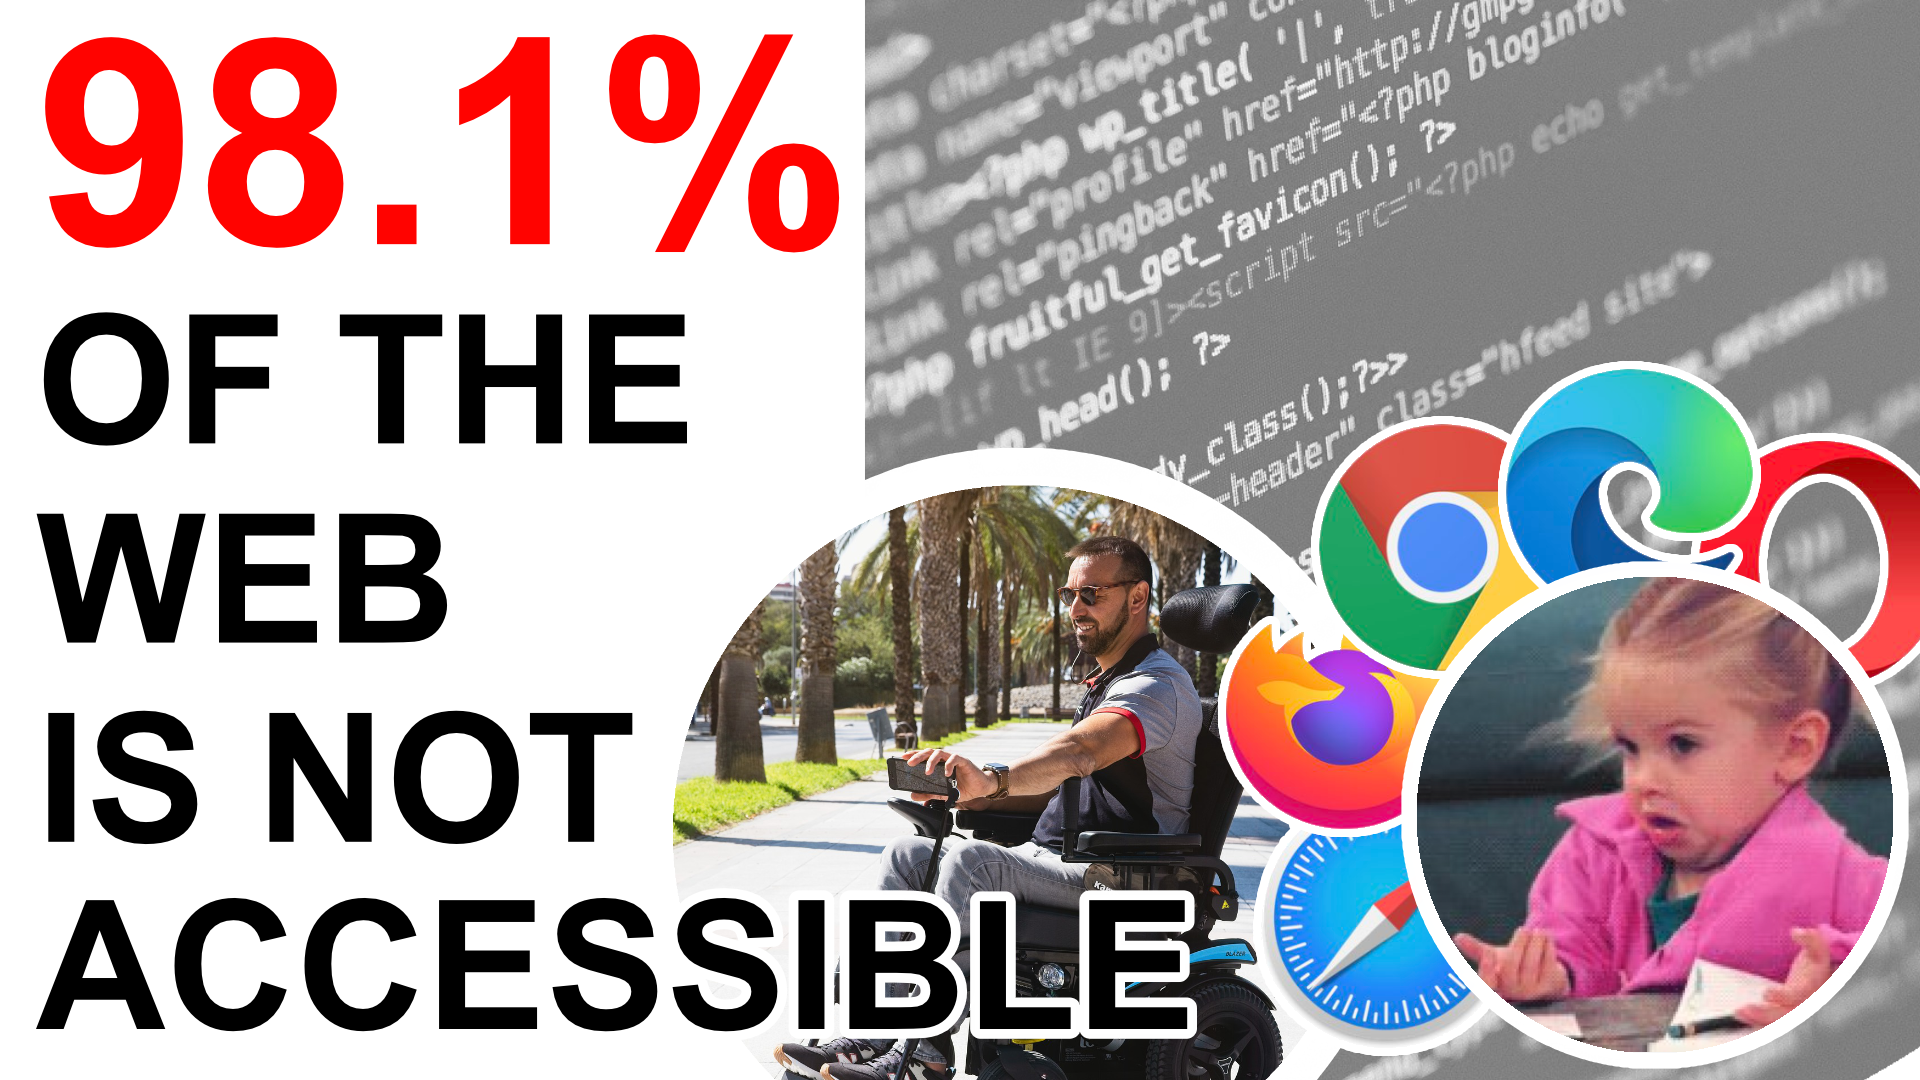 A little confused girl surrounded by browser logos, a man in a wheelchair and a text claiming that 98.1% of the web is not accessible.